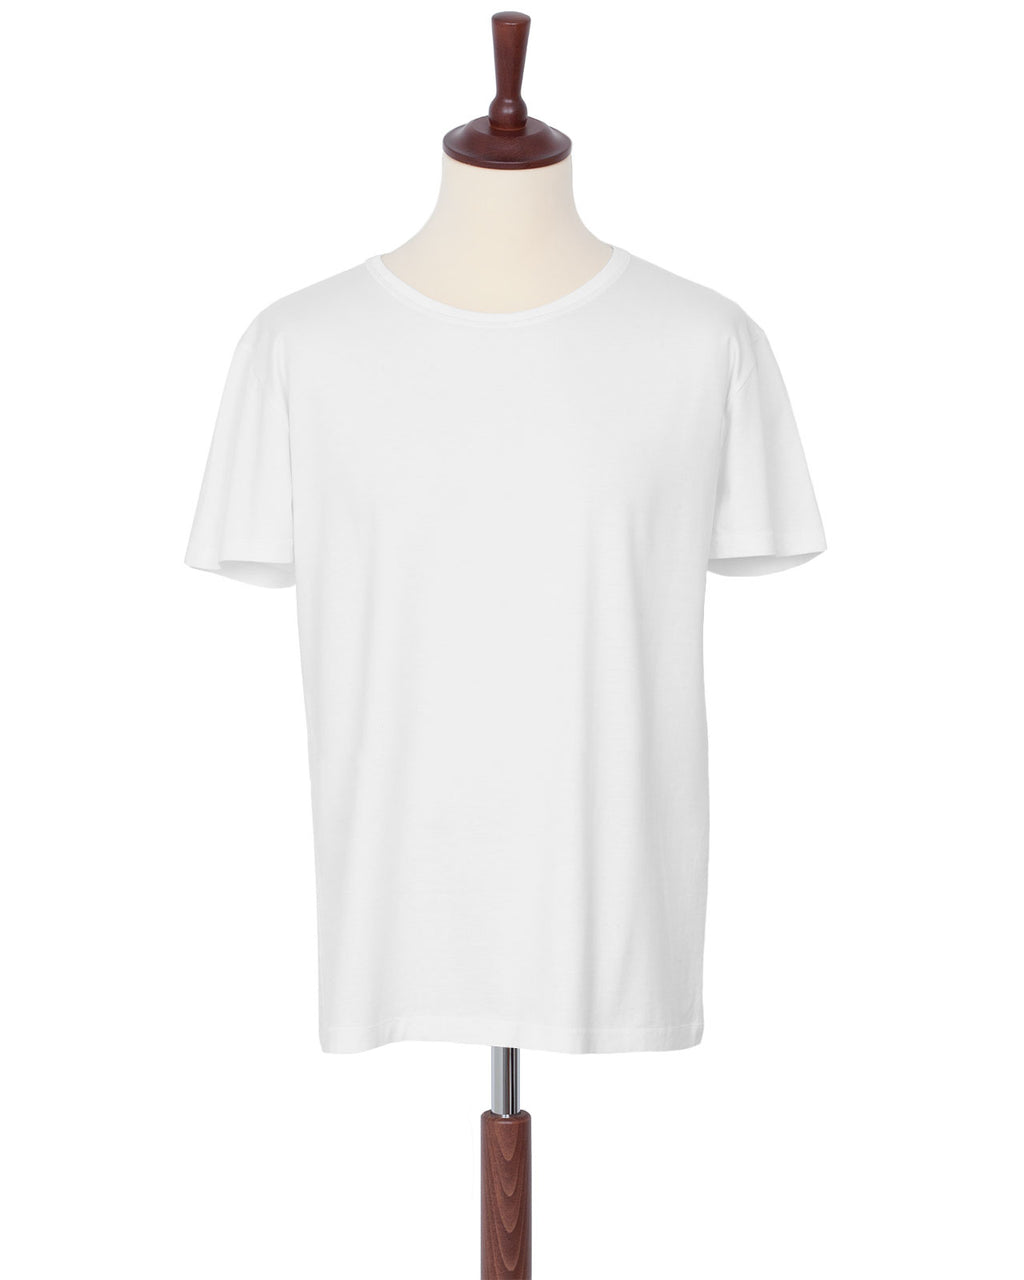 Indigofera Malick T-Shirt, Cocatoo White